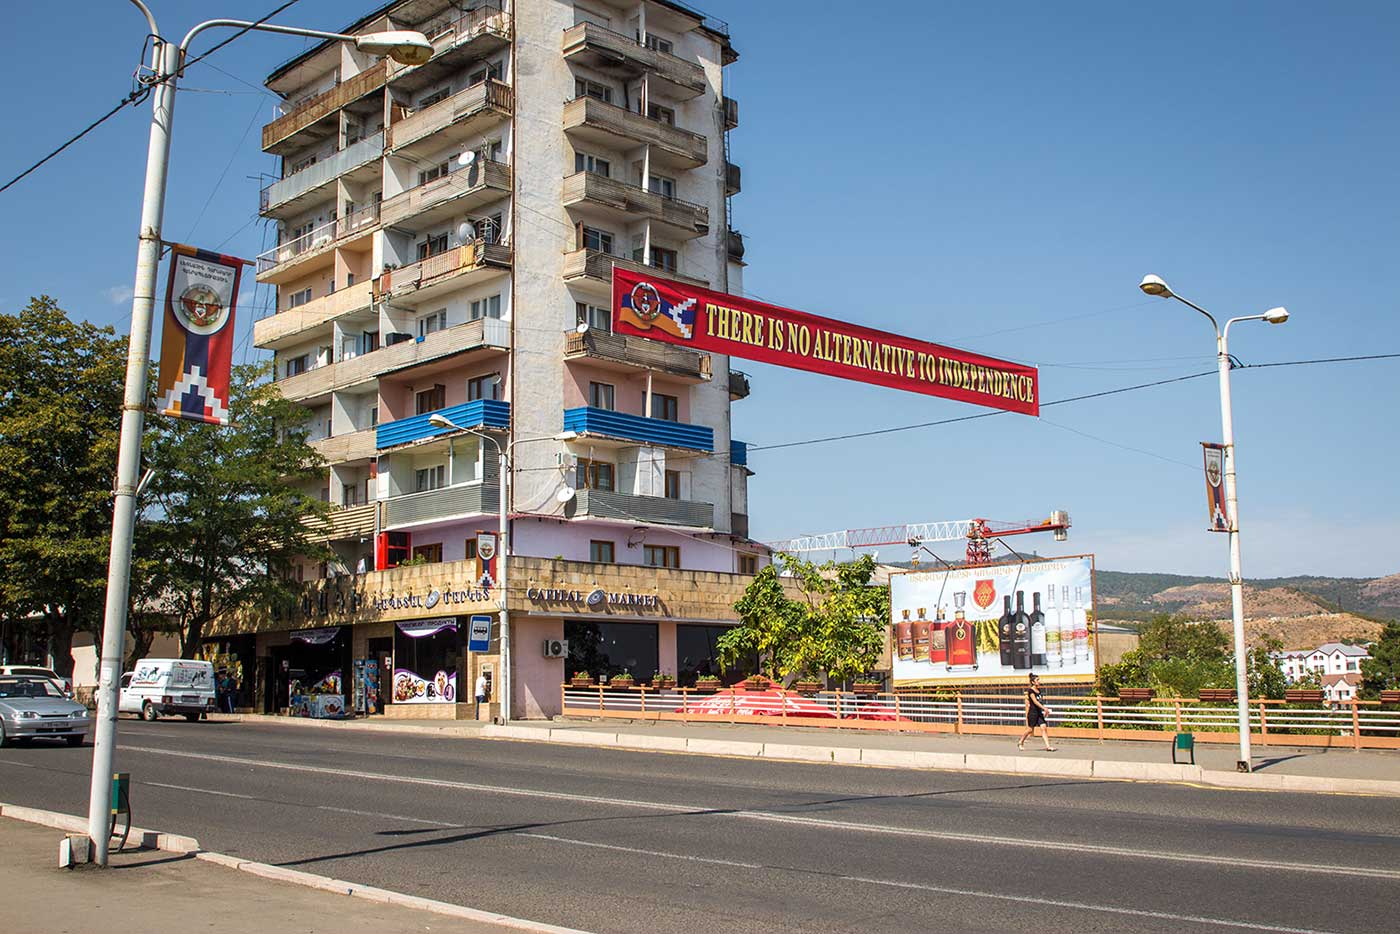 Flags and political banners fly above a billboard advertising wine and cognac. Stepanakert, Nagorno-Karabakh.